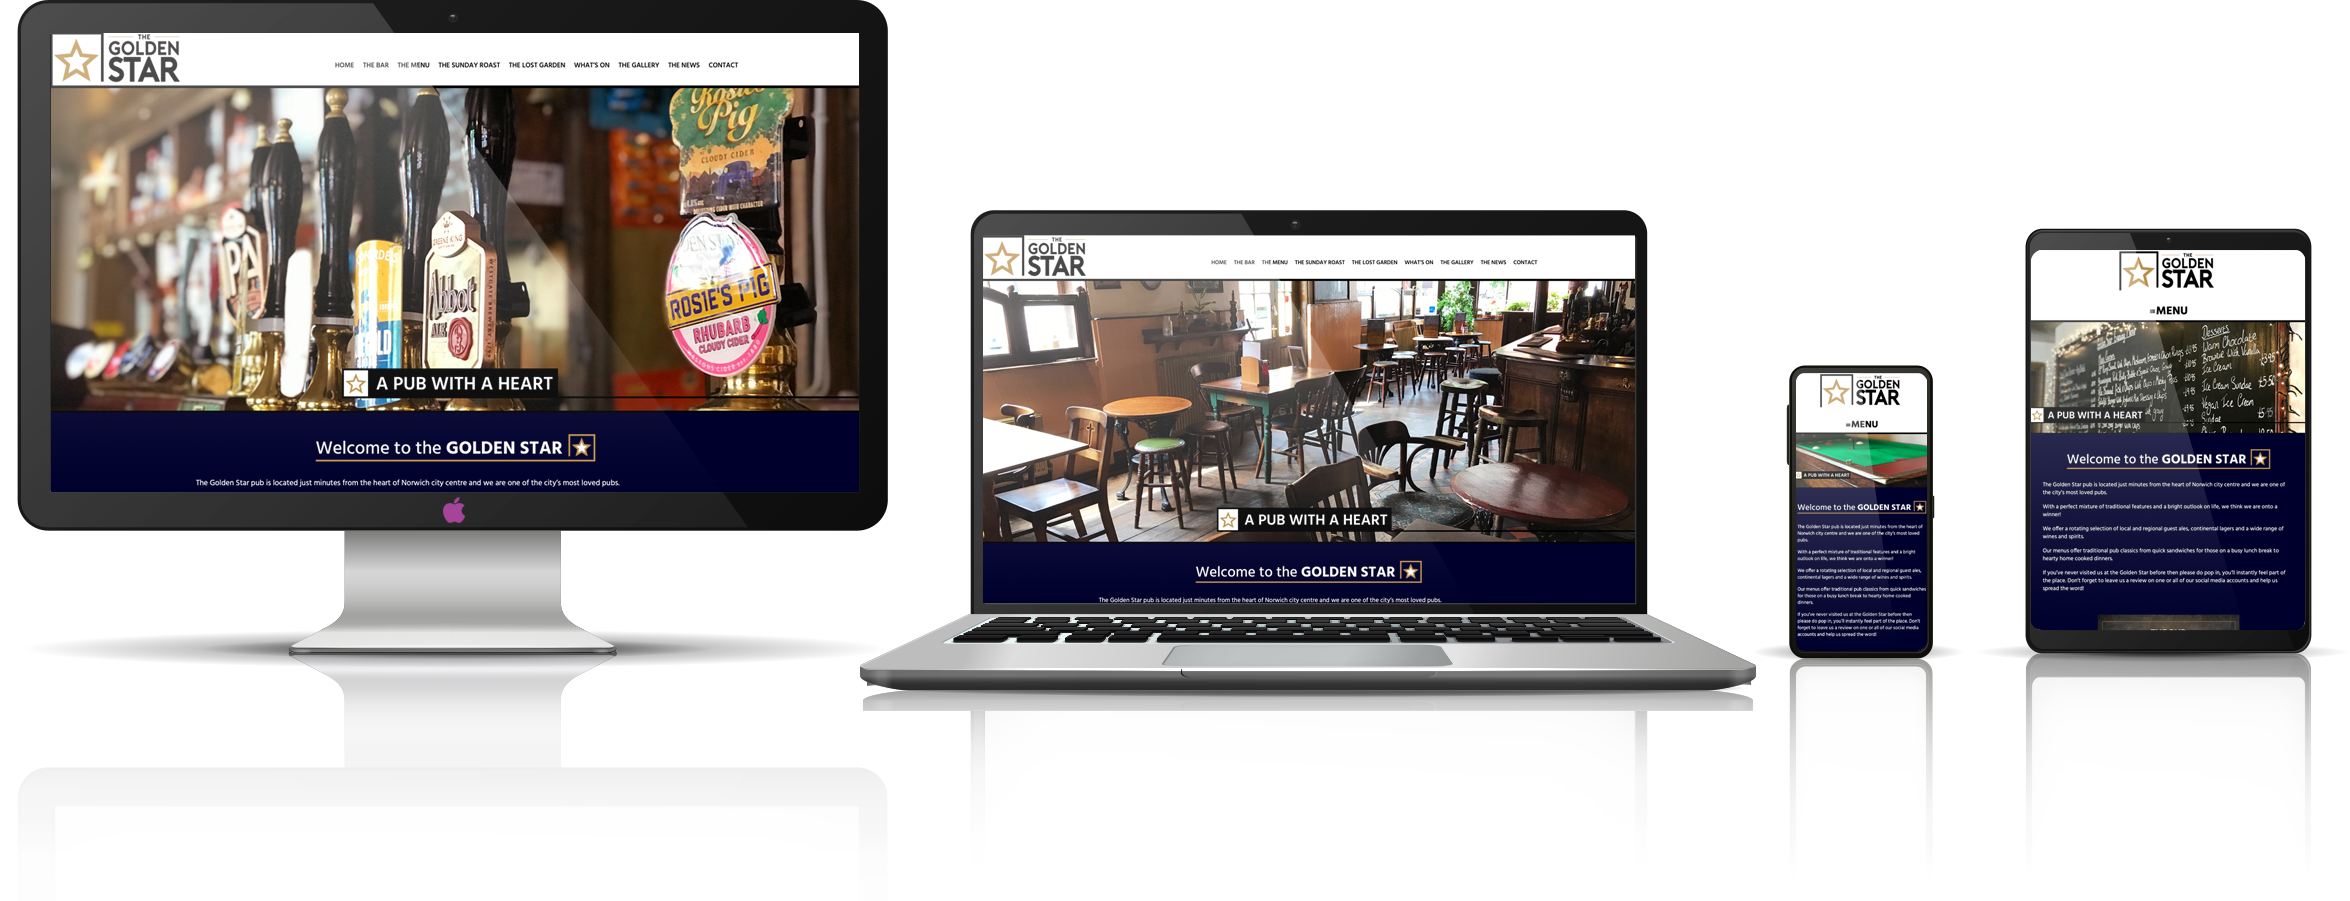 The Golden Star independent Norwich pubs fully responsive mock-up images showing desktop, laptop, tablet, and mobile phone devices.